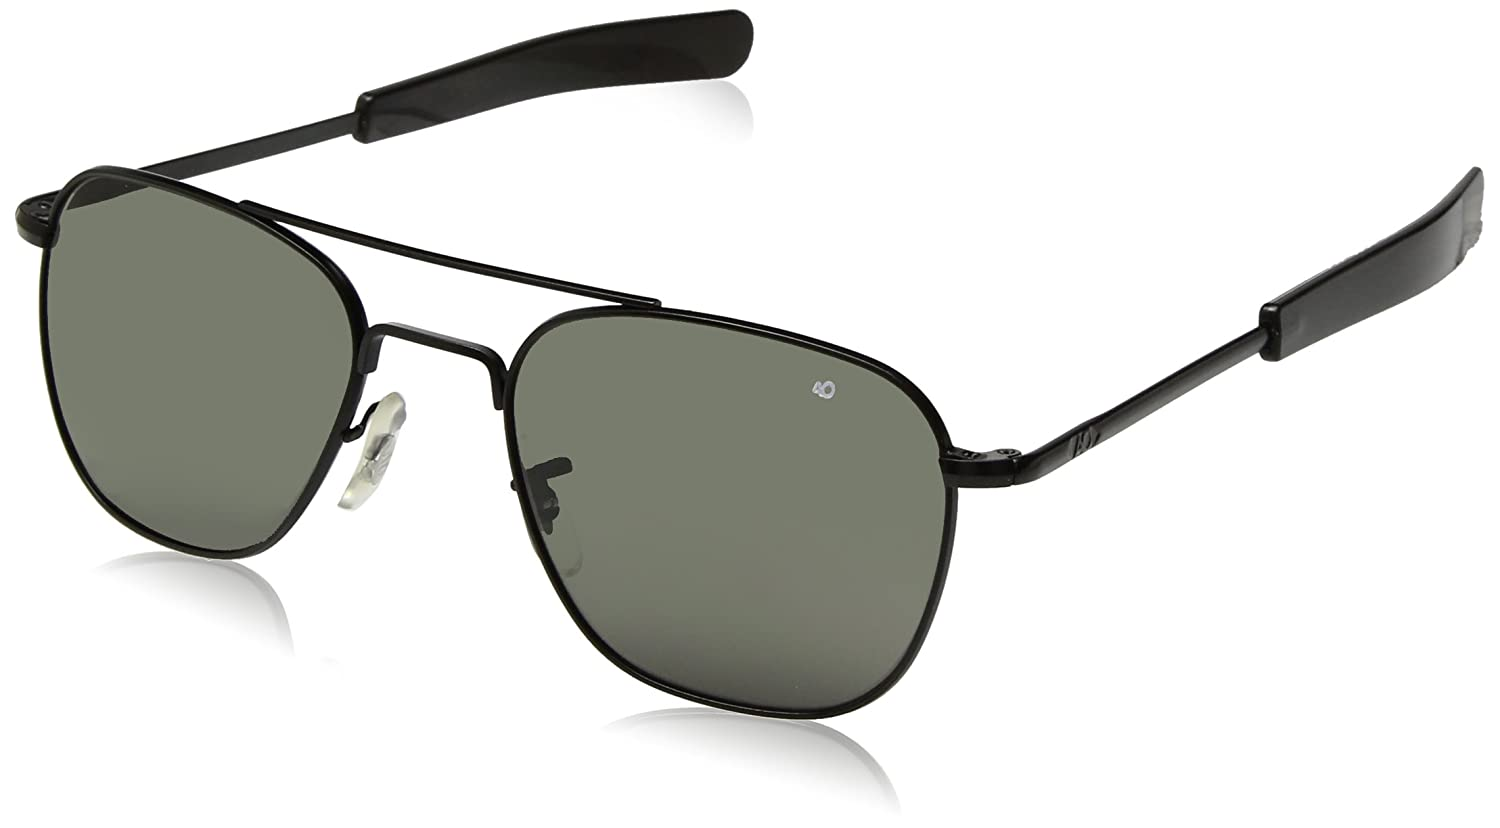 Amazon.com  AO Eyewear Original Pilot Sunglasses 55mm Gray Non-Polarized  Polycarbonate Lenses  Sports   Outdoors cb012db0391